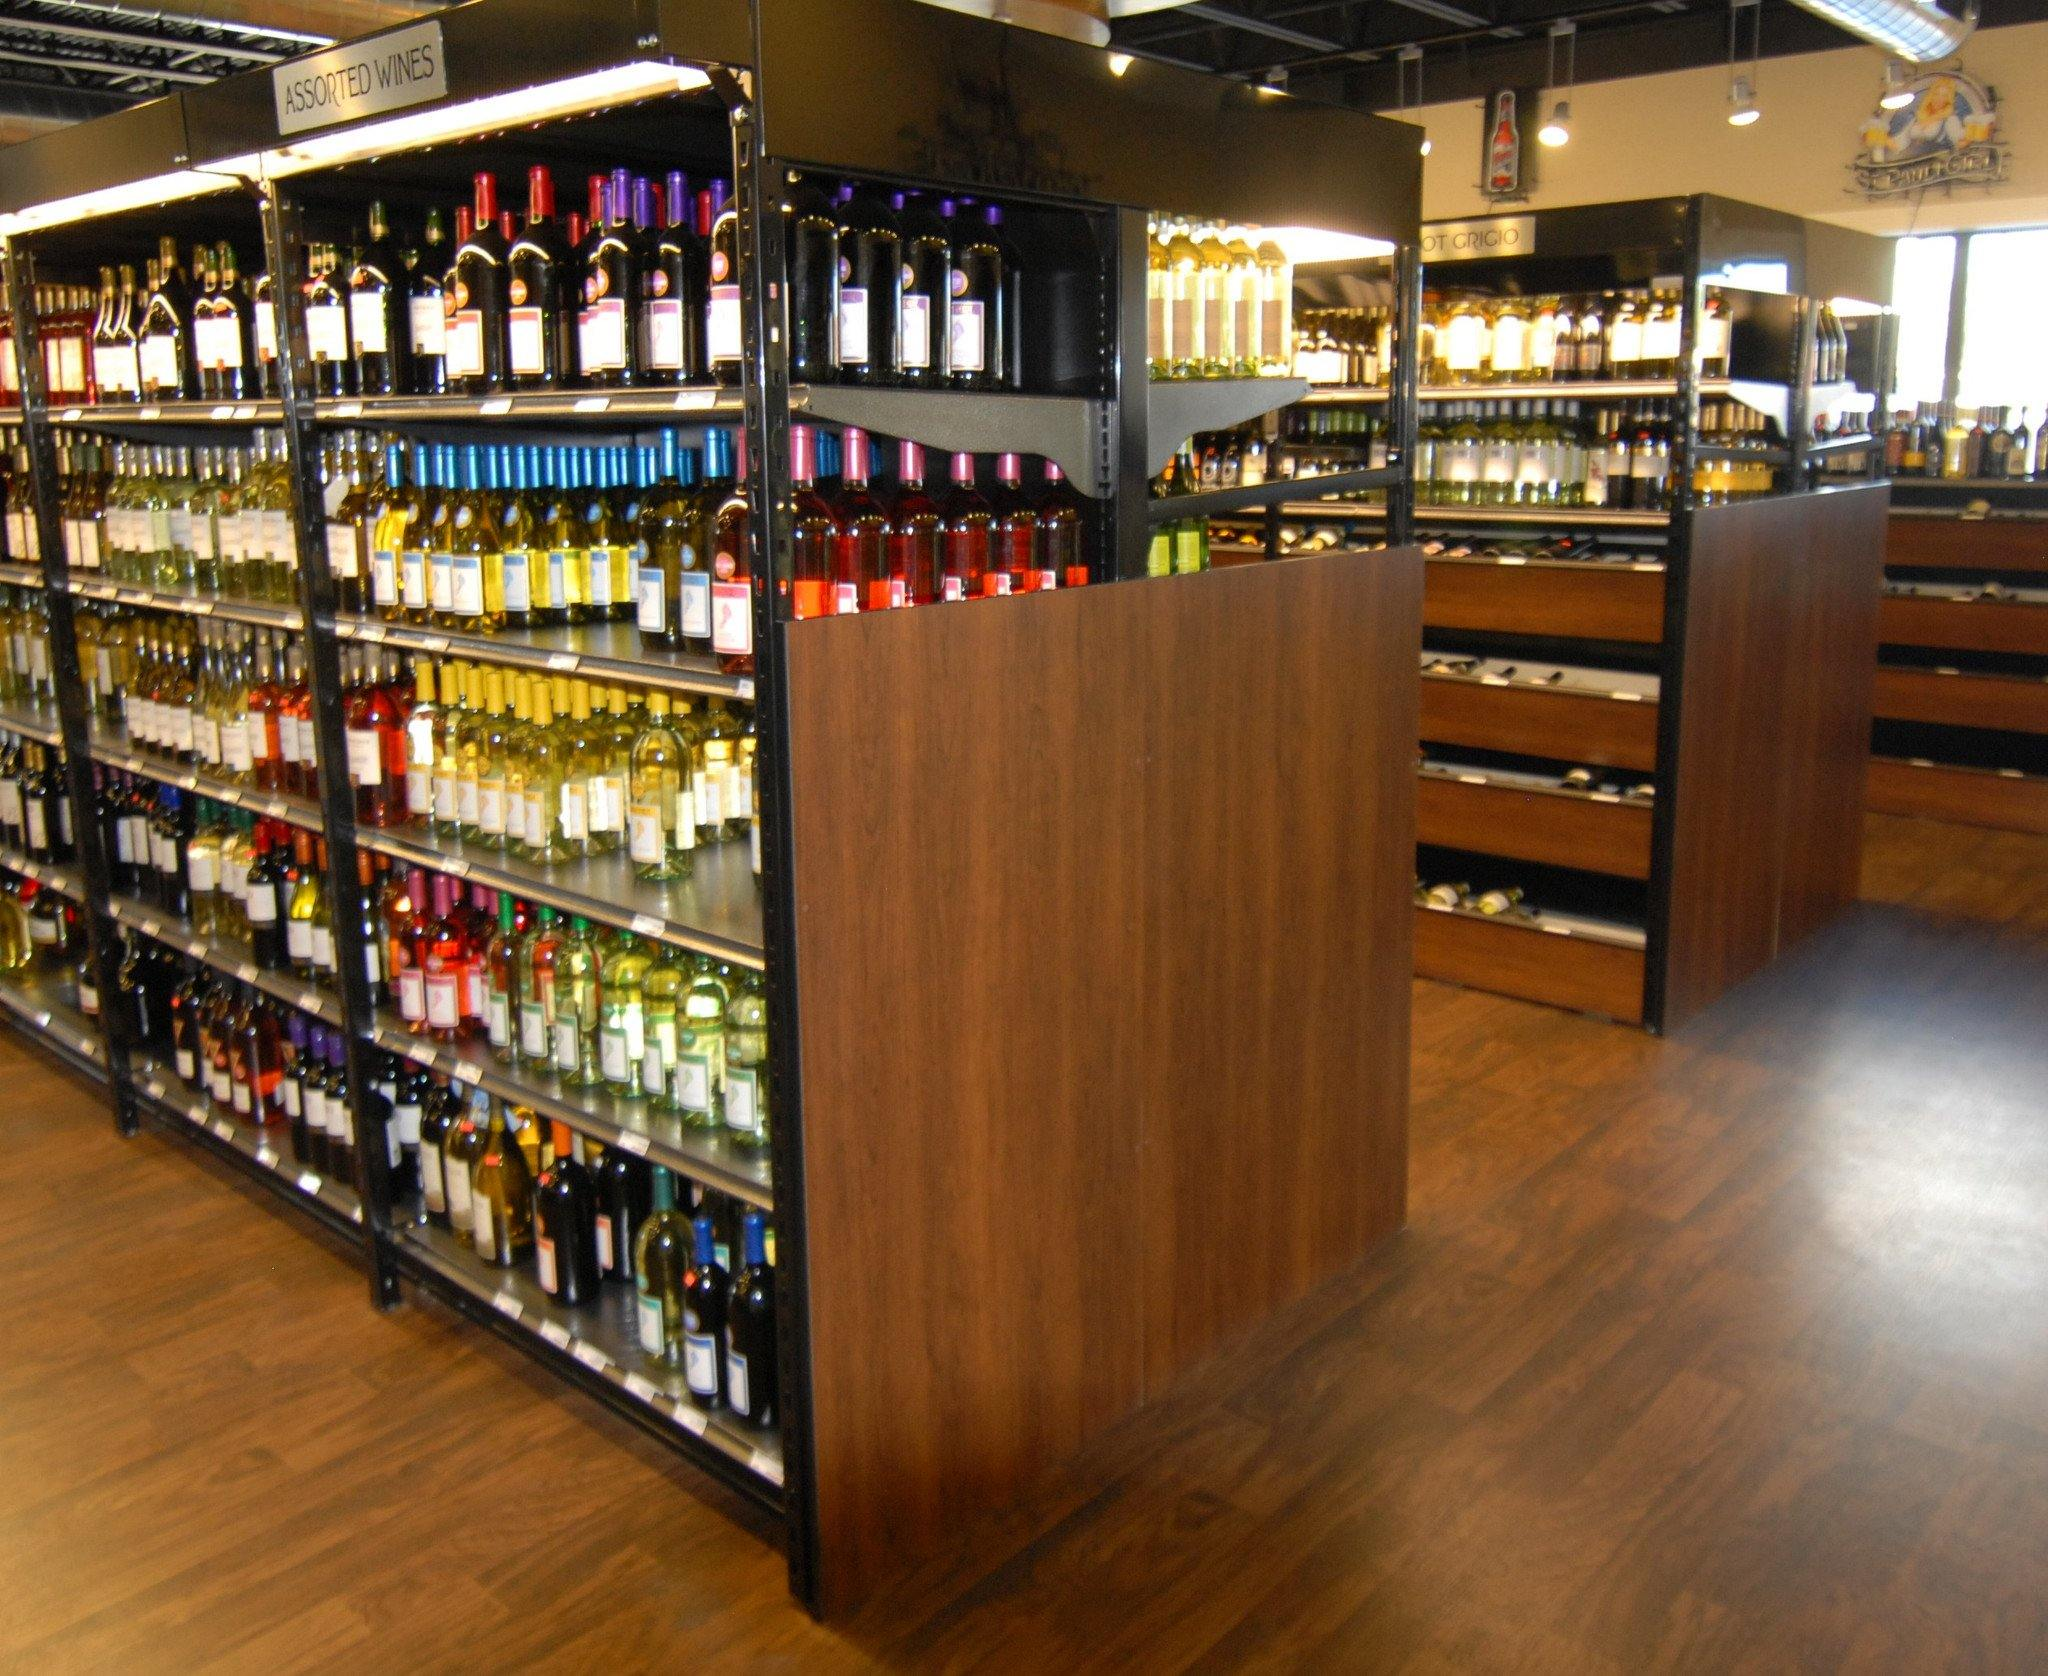 dsc 9470jpgv1505942709 dsc 9470 sitemap products 1xmlfrom129753555to11466820692 beer merchandiser wine and liquor beer merchandiser wine and liquor